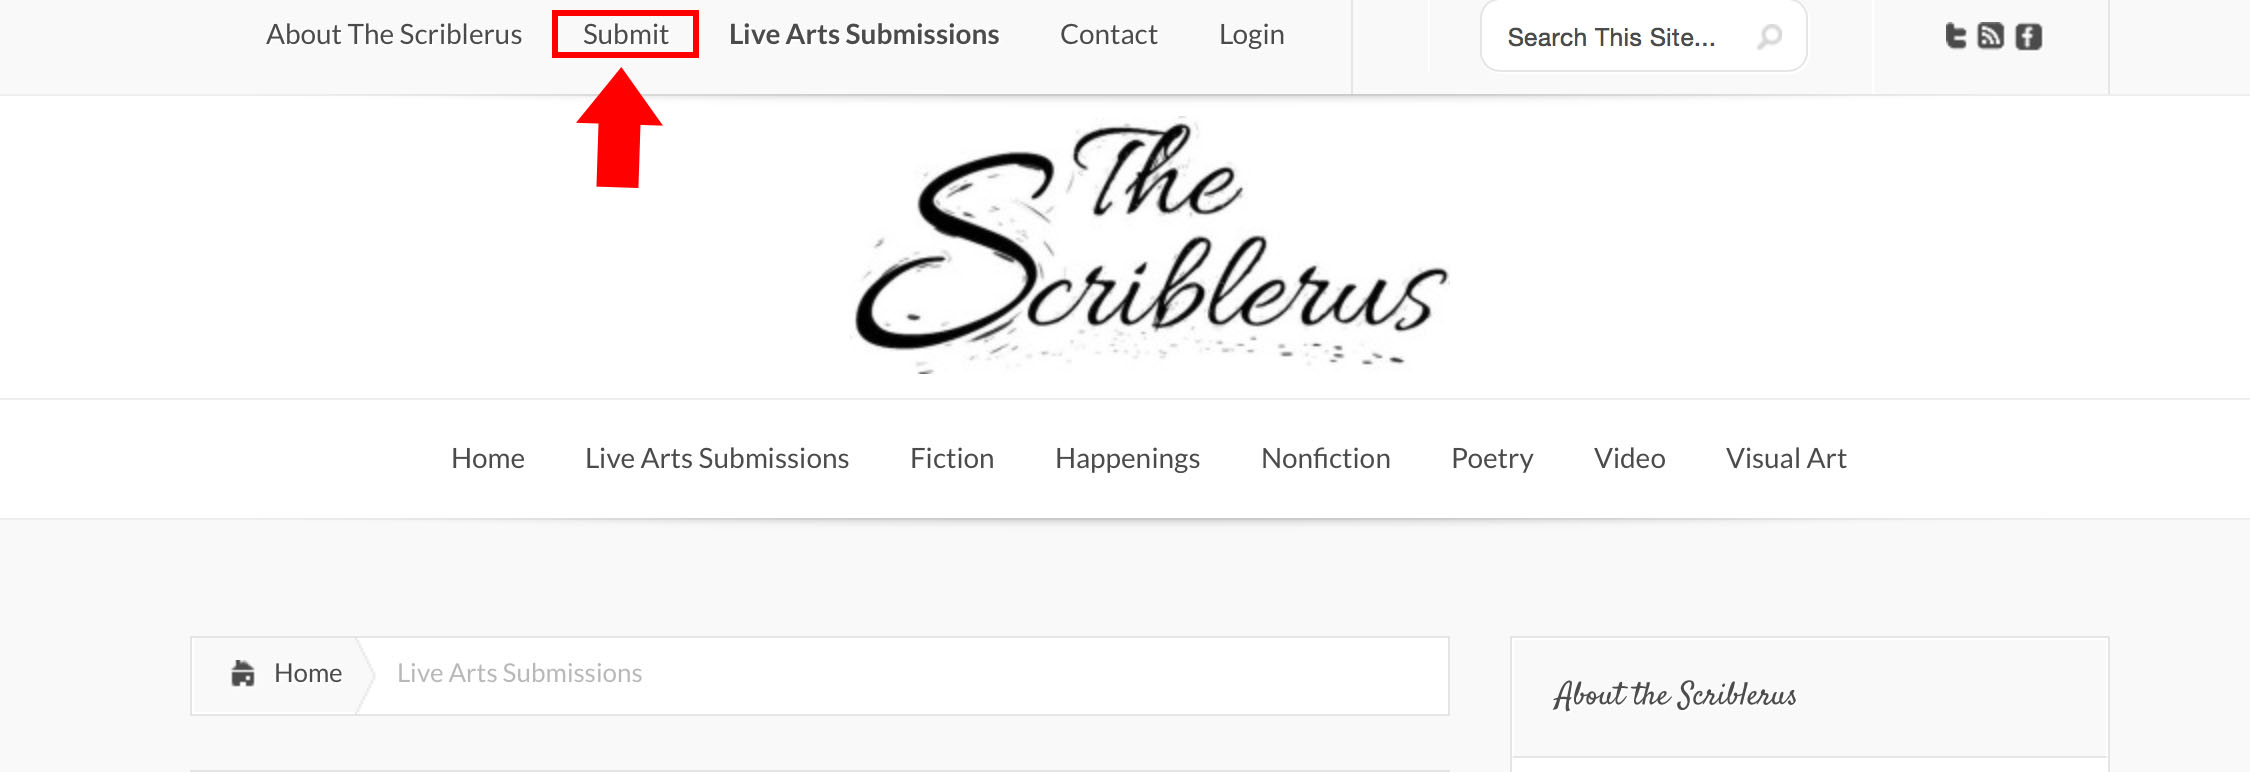 Hit that submit button now! Source:http://thescriblerus.com